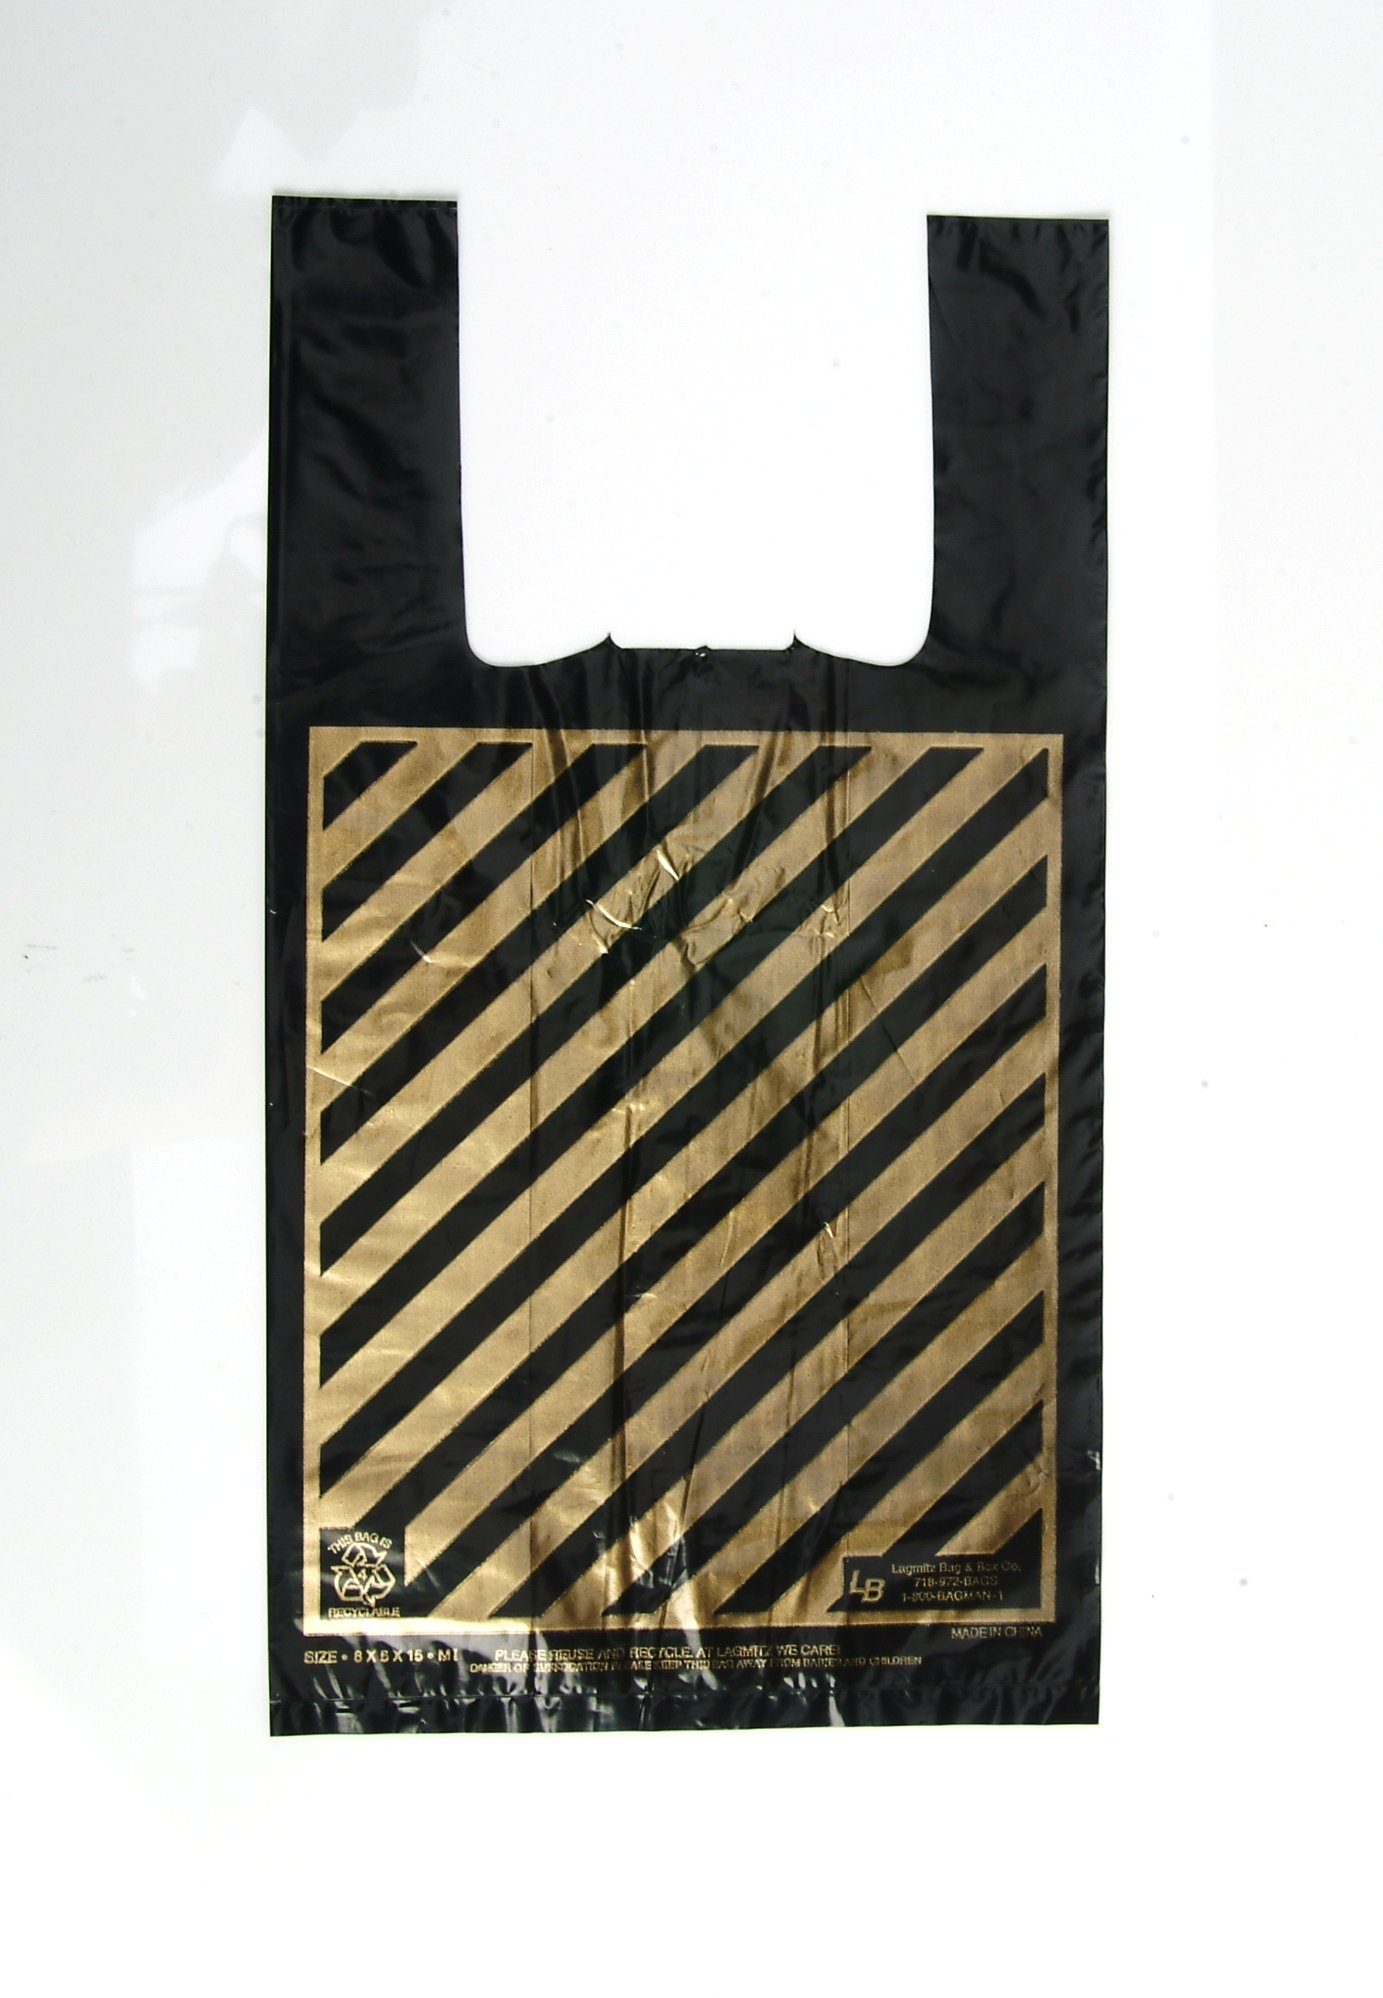 ''WOW..1 penny Shipping!!!''-Jumbo Bags, Size:17x8x30, 1.3 Mil, 1000 per case, Black Plastic Shopping Bags with Gold Stripes, 16.9 Cents Per Bag, $169.99 per case.